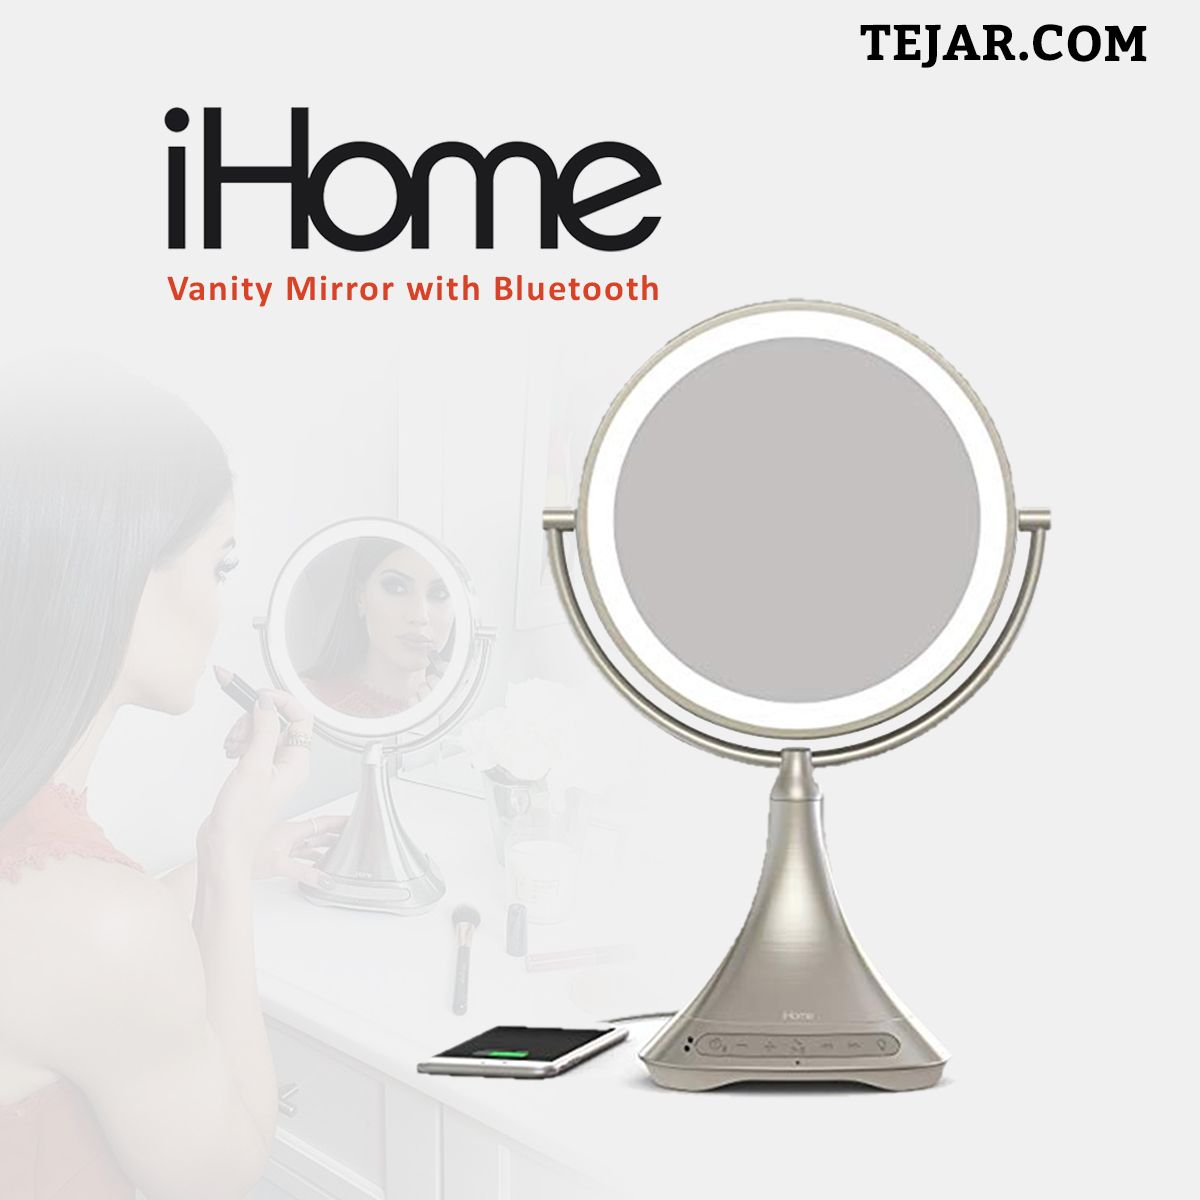 Ihome Icvbt7 9 Double Sided Portable Vanity Mirror With Bluetooth Audio Ihome Bluetooth Audio Wireless Audio